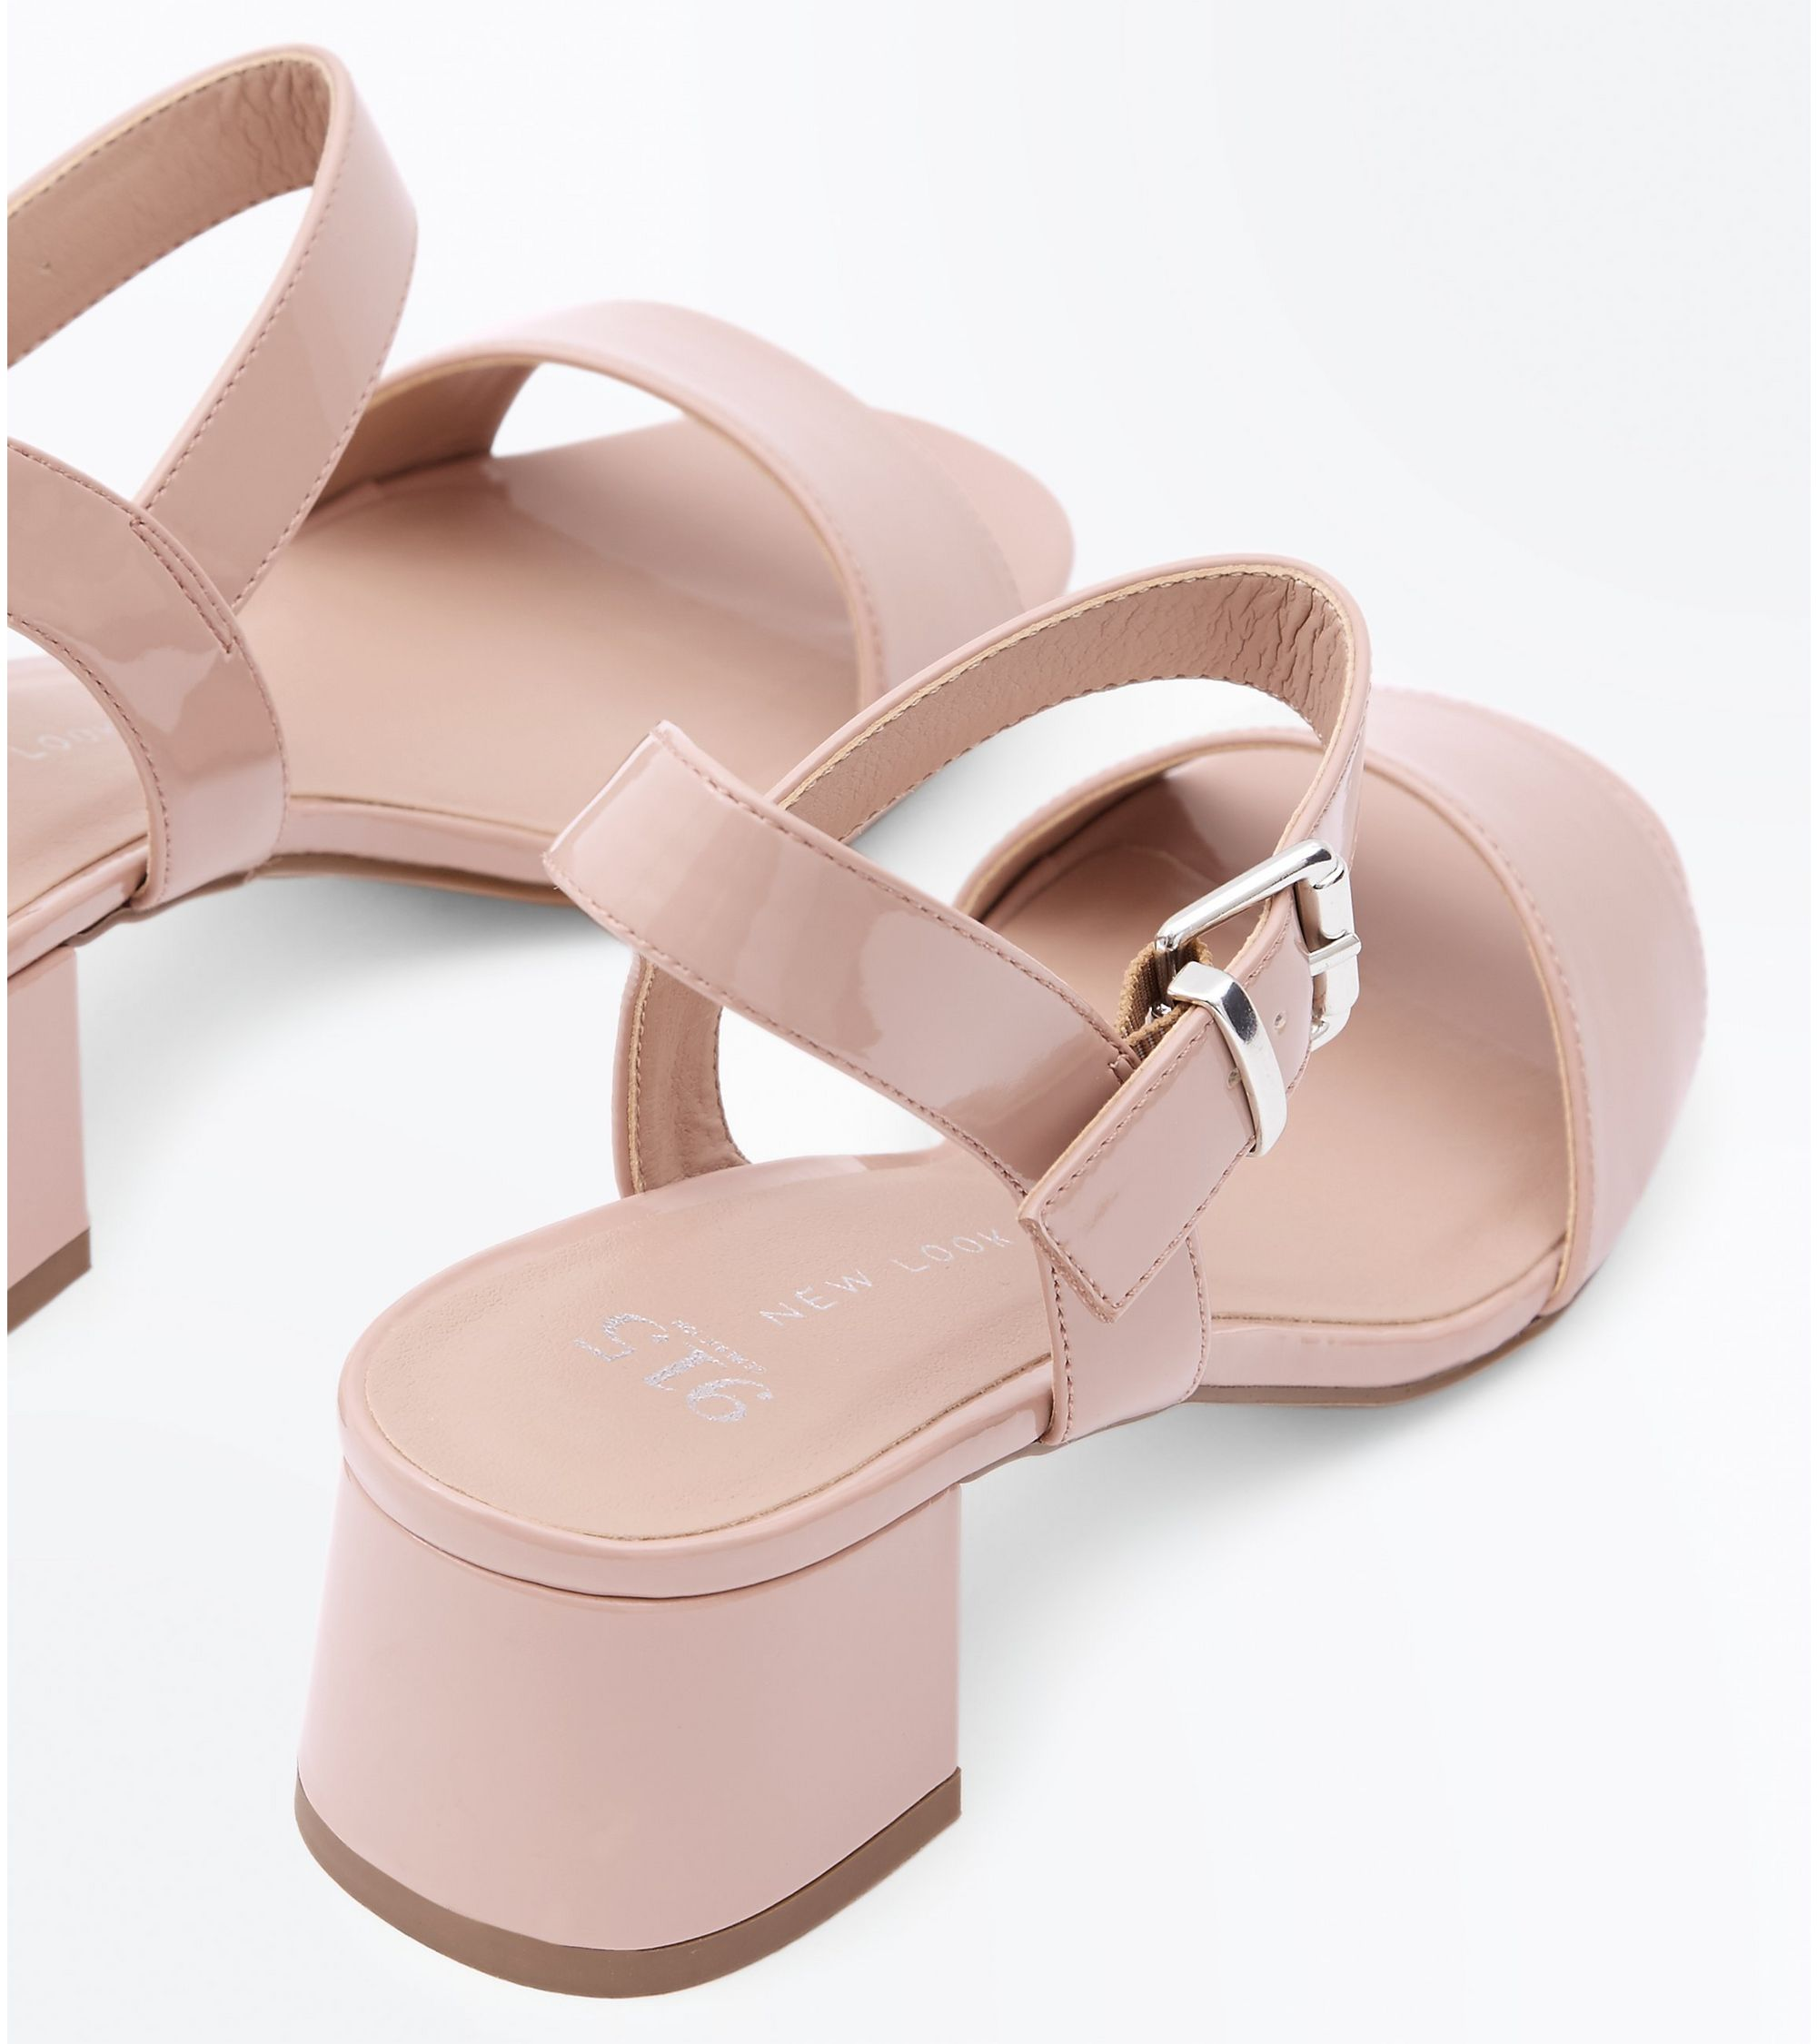 a7624050f4 New Look Girls Nude Patent Block Heel Sandals at £15 | love the brands